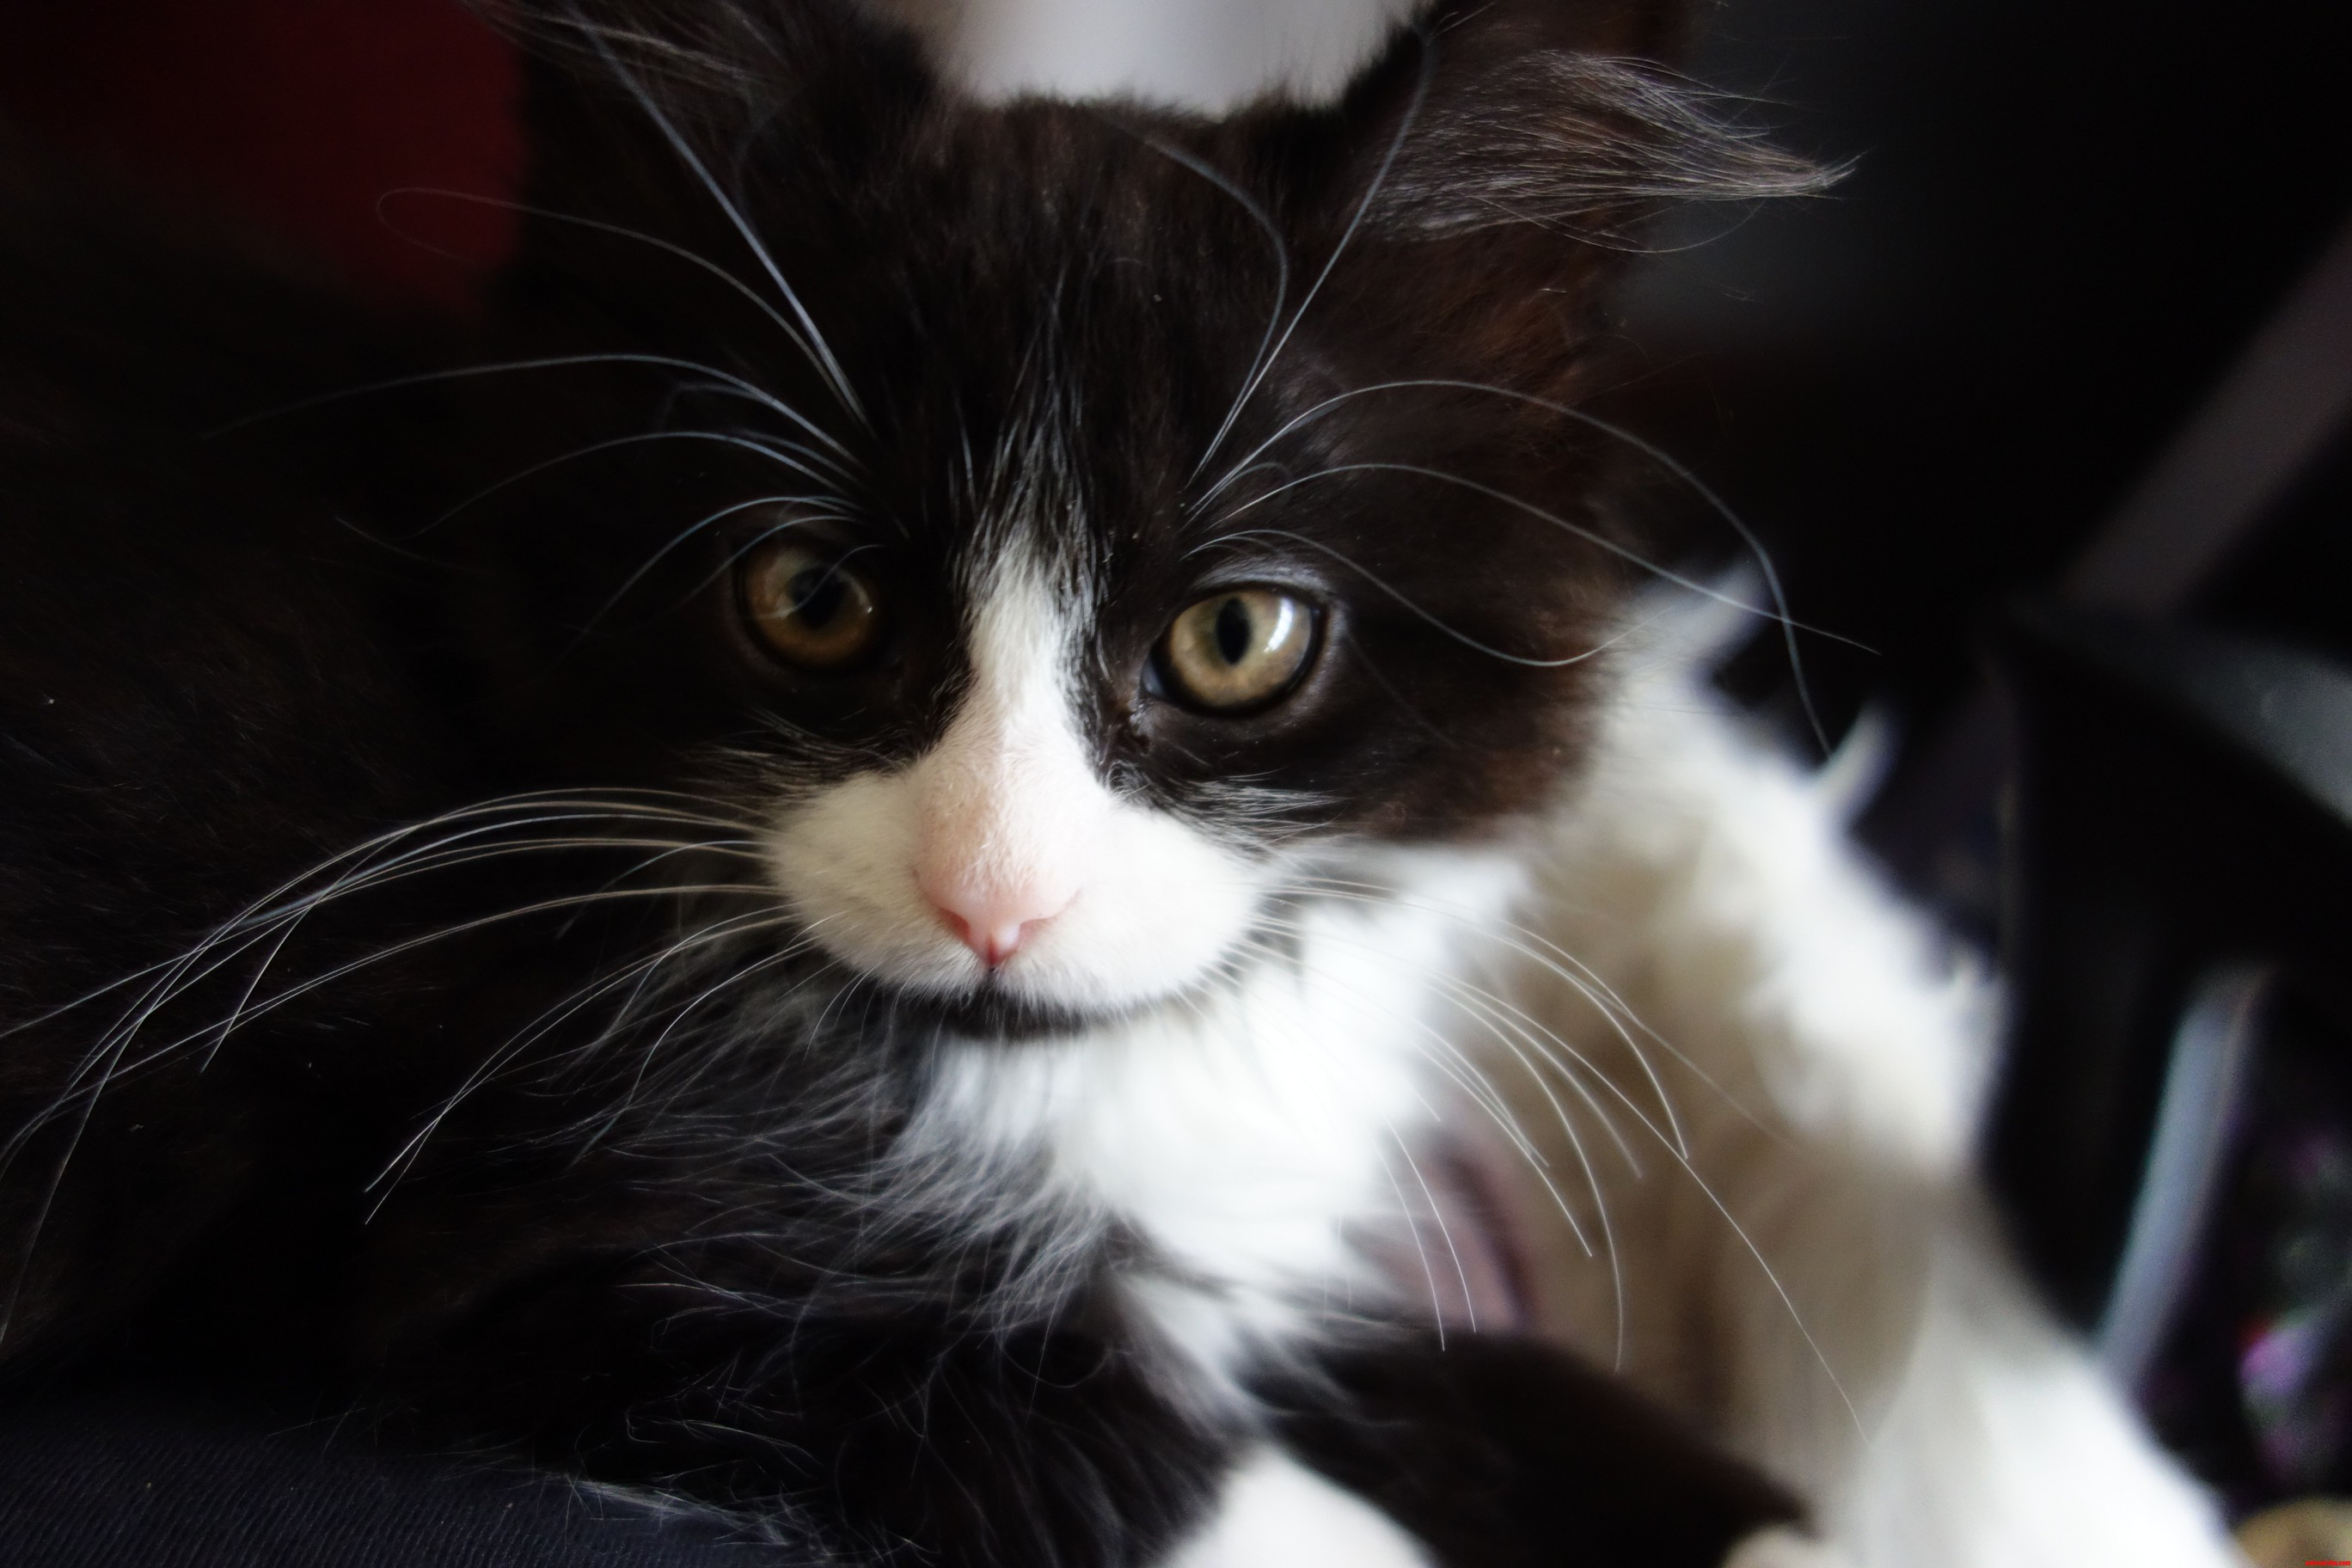 I Think We Should Re-Name Max  Mrs Whiskers